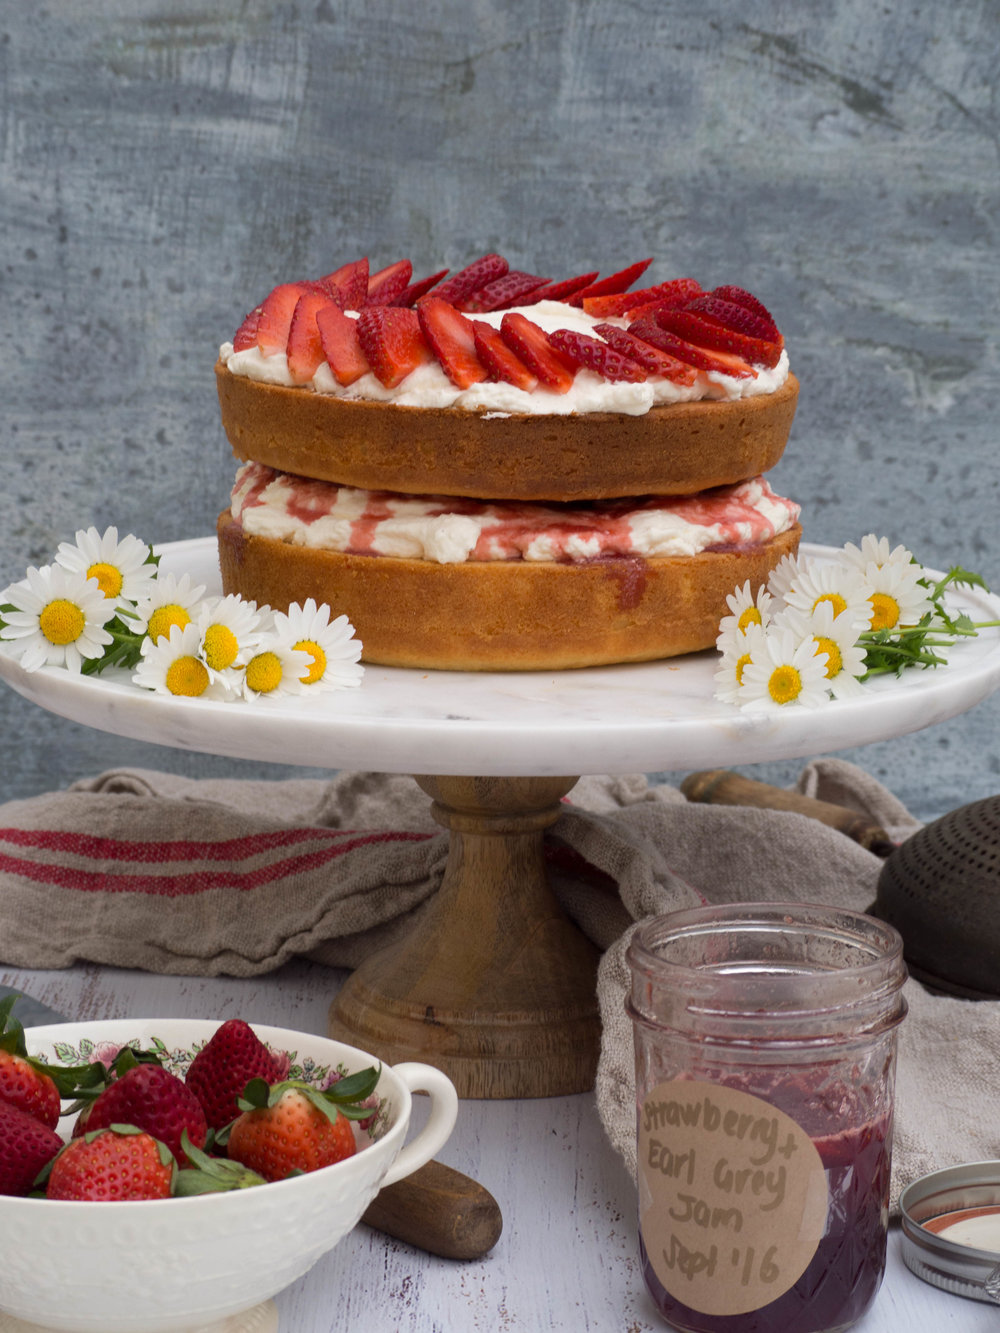 Strawberry & Earl Grey Cake